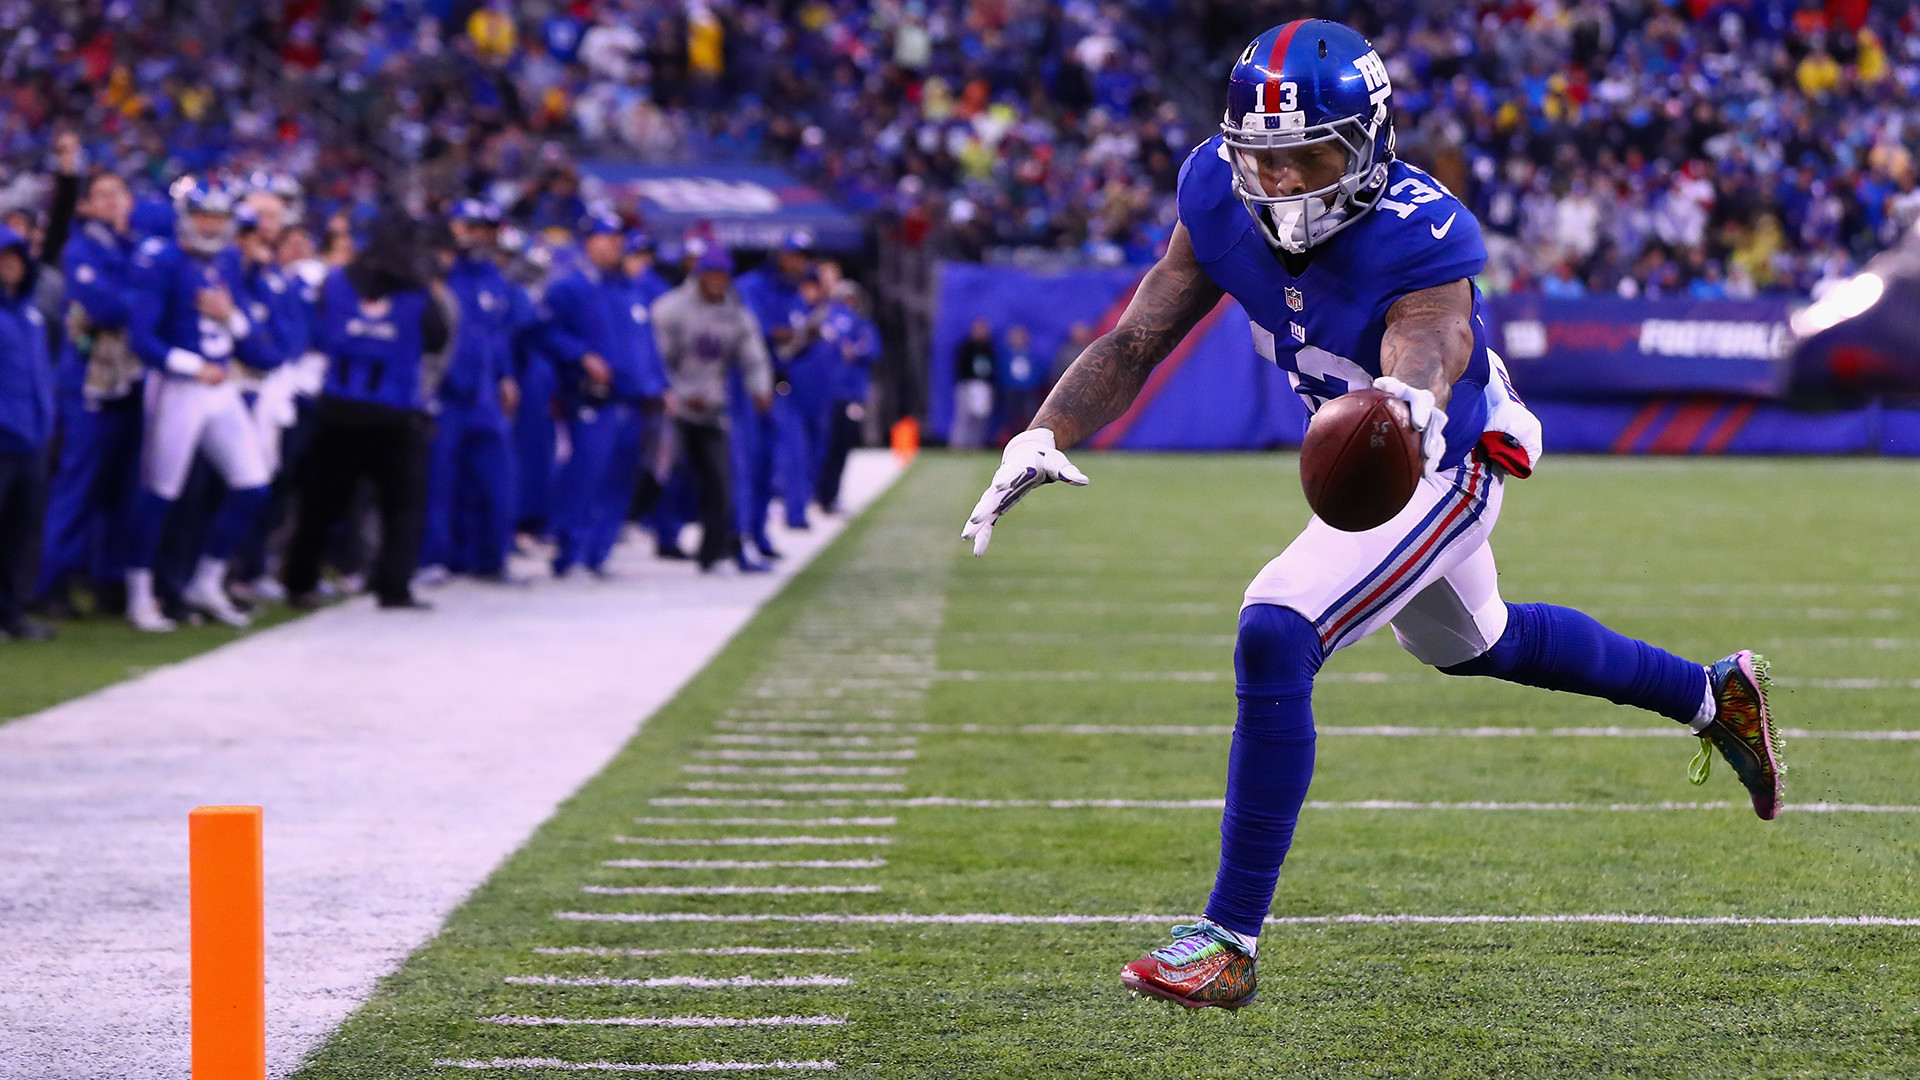 Odell Beckham Jr. pulled off another great one-handed catch to lead to his